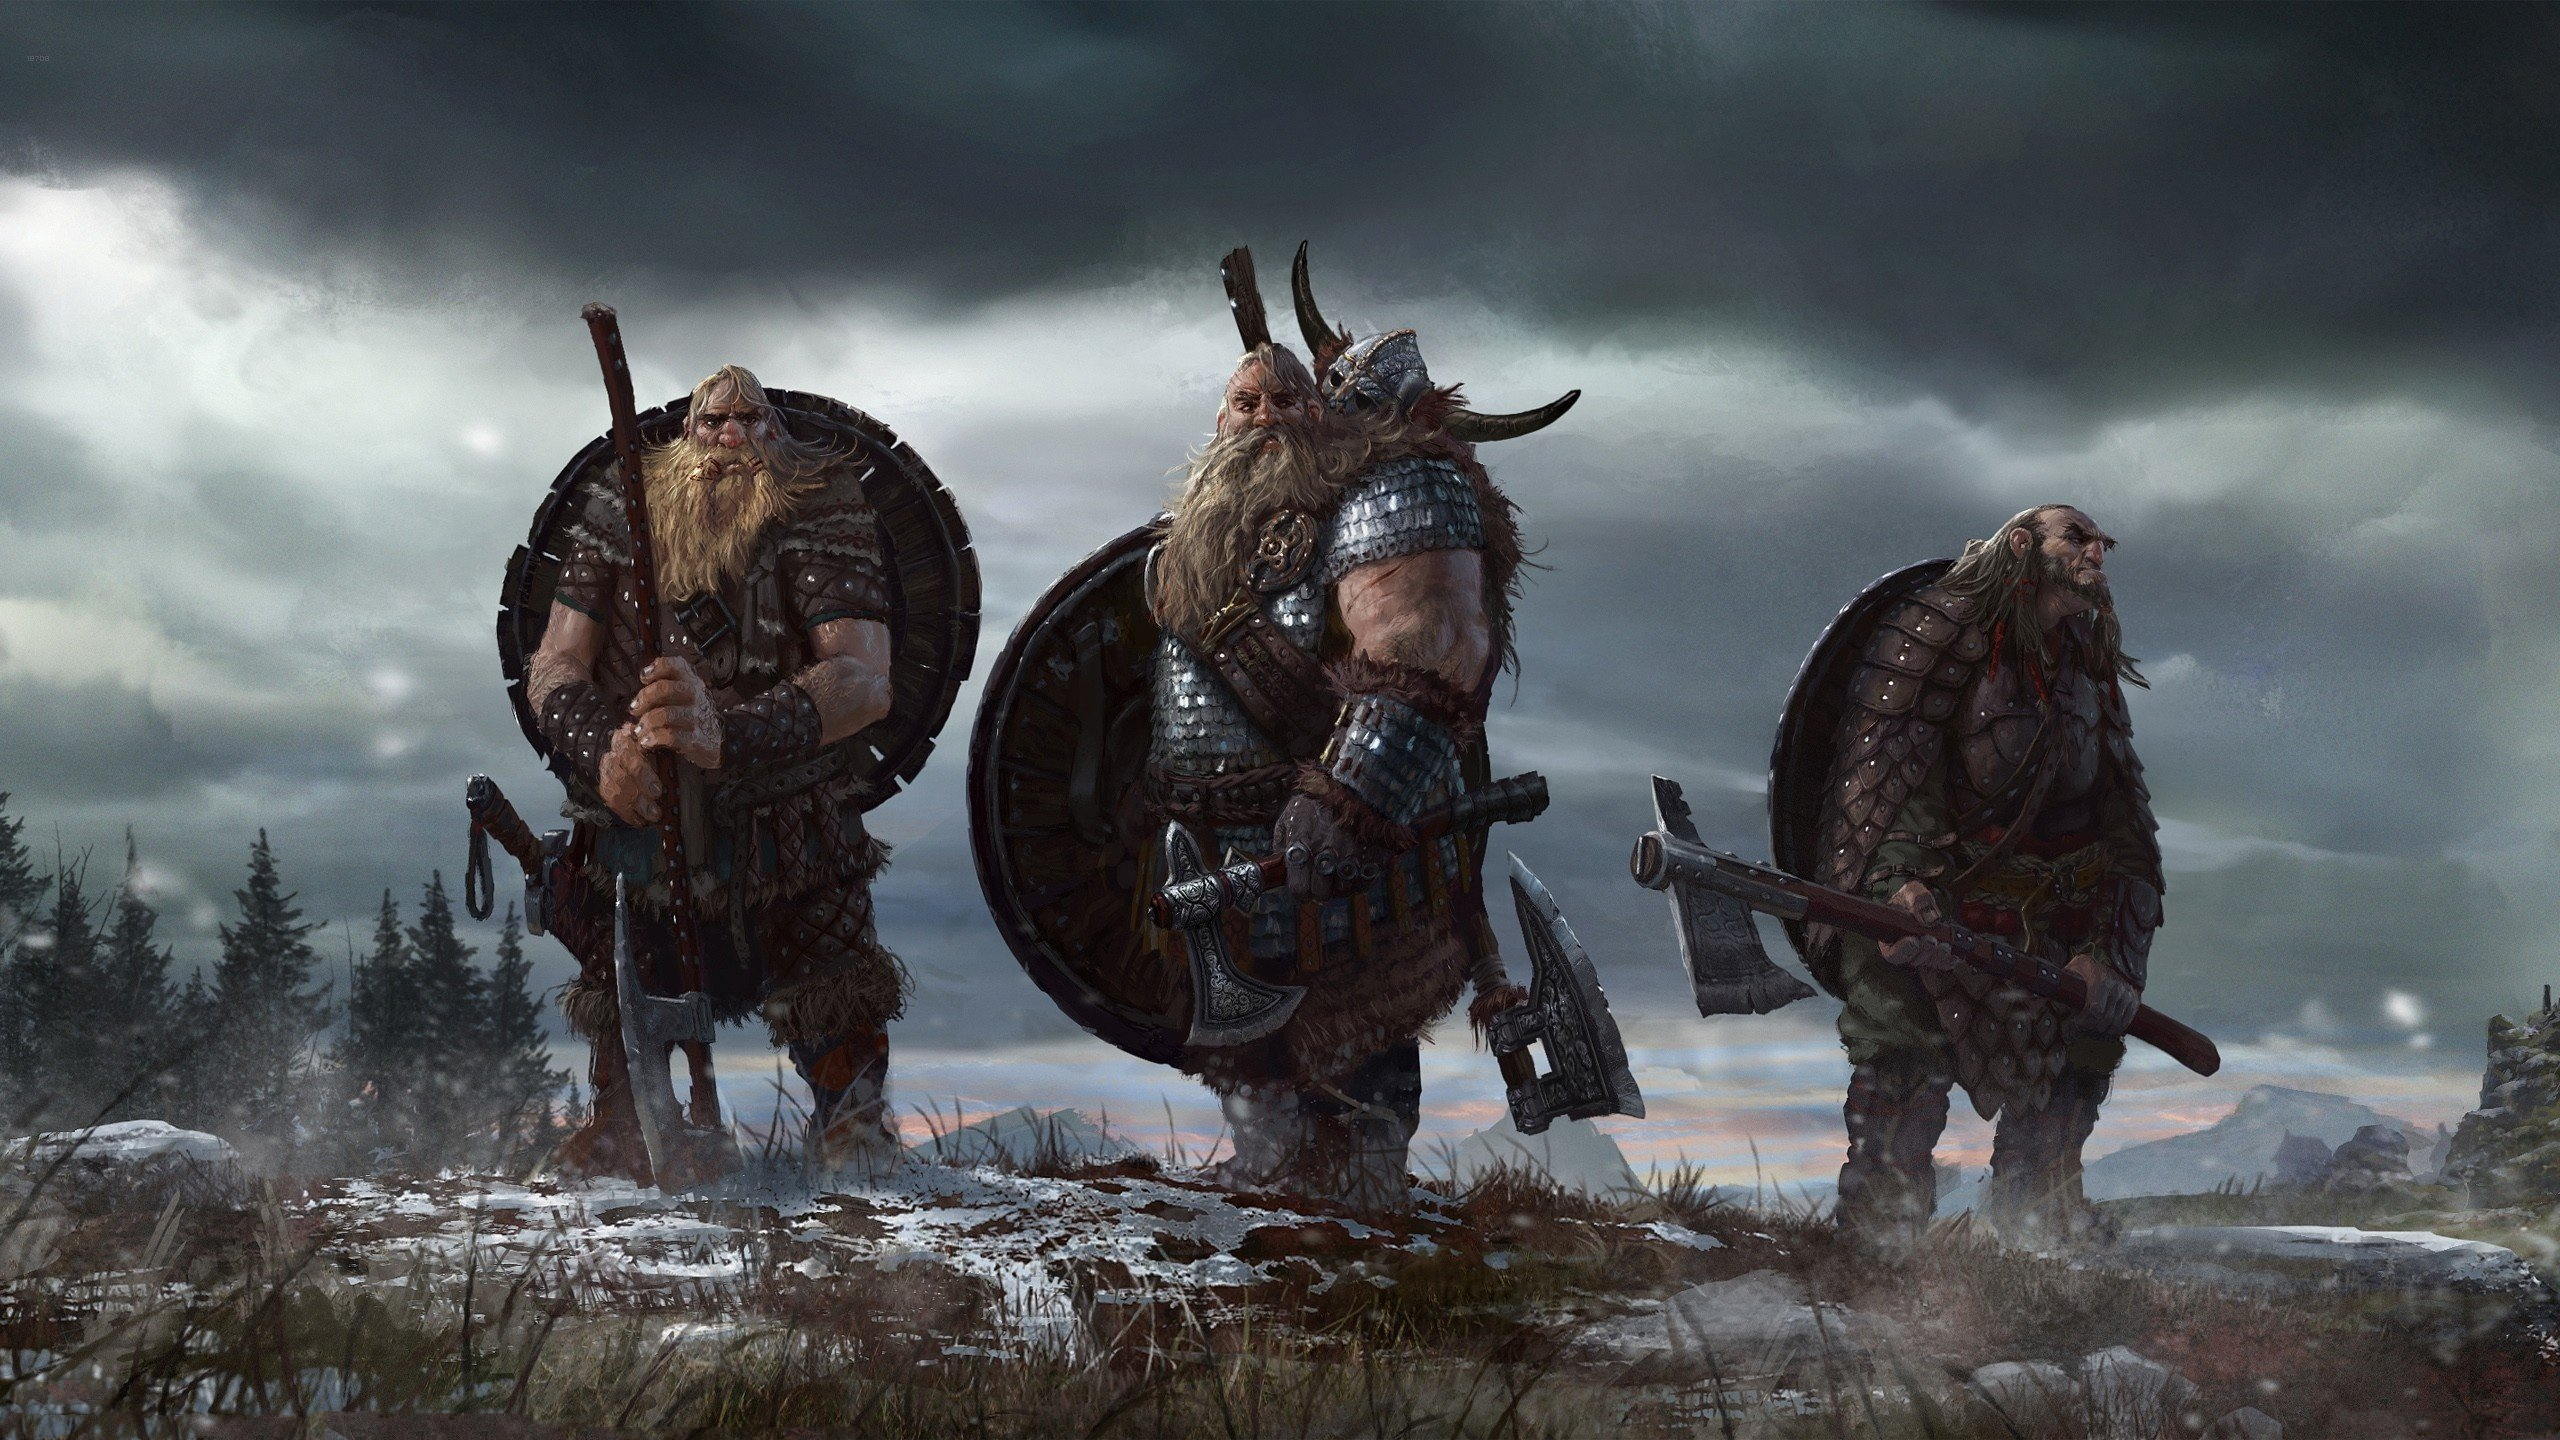 Viking Backgrounds Download 2560x1440